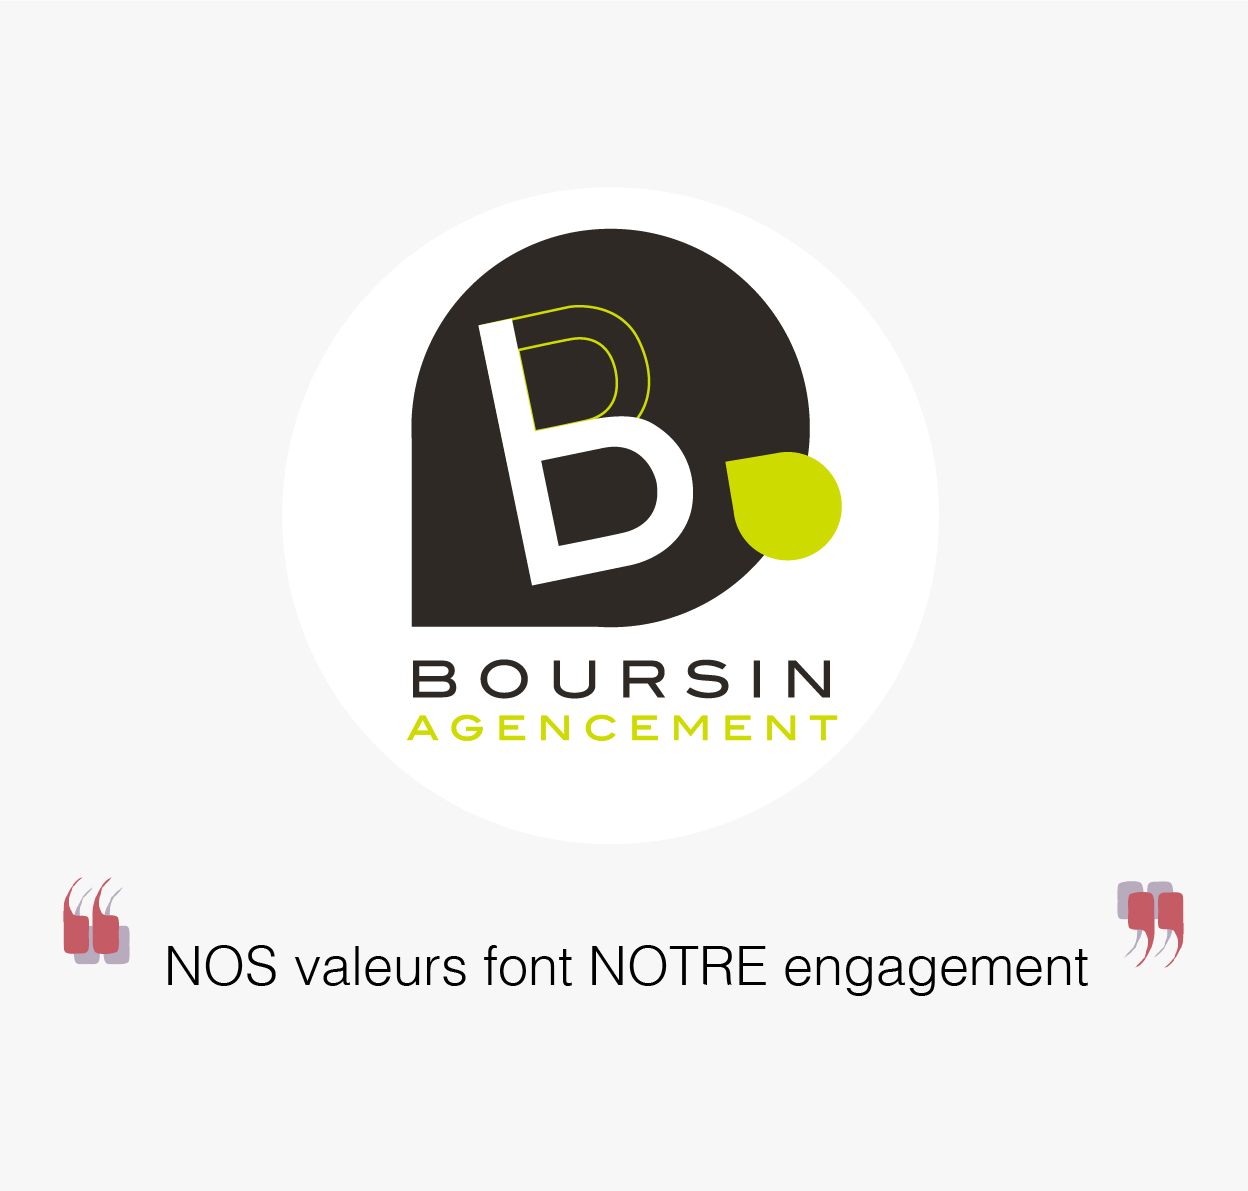 BOURSIN AGENCEMENT ENGAGEMENT